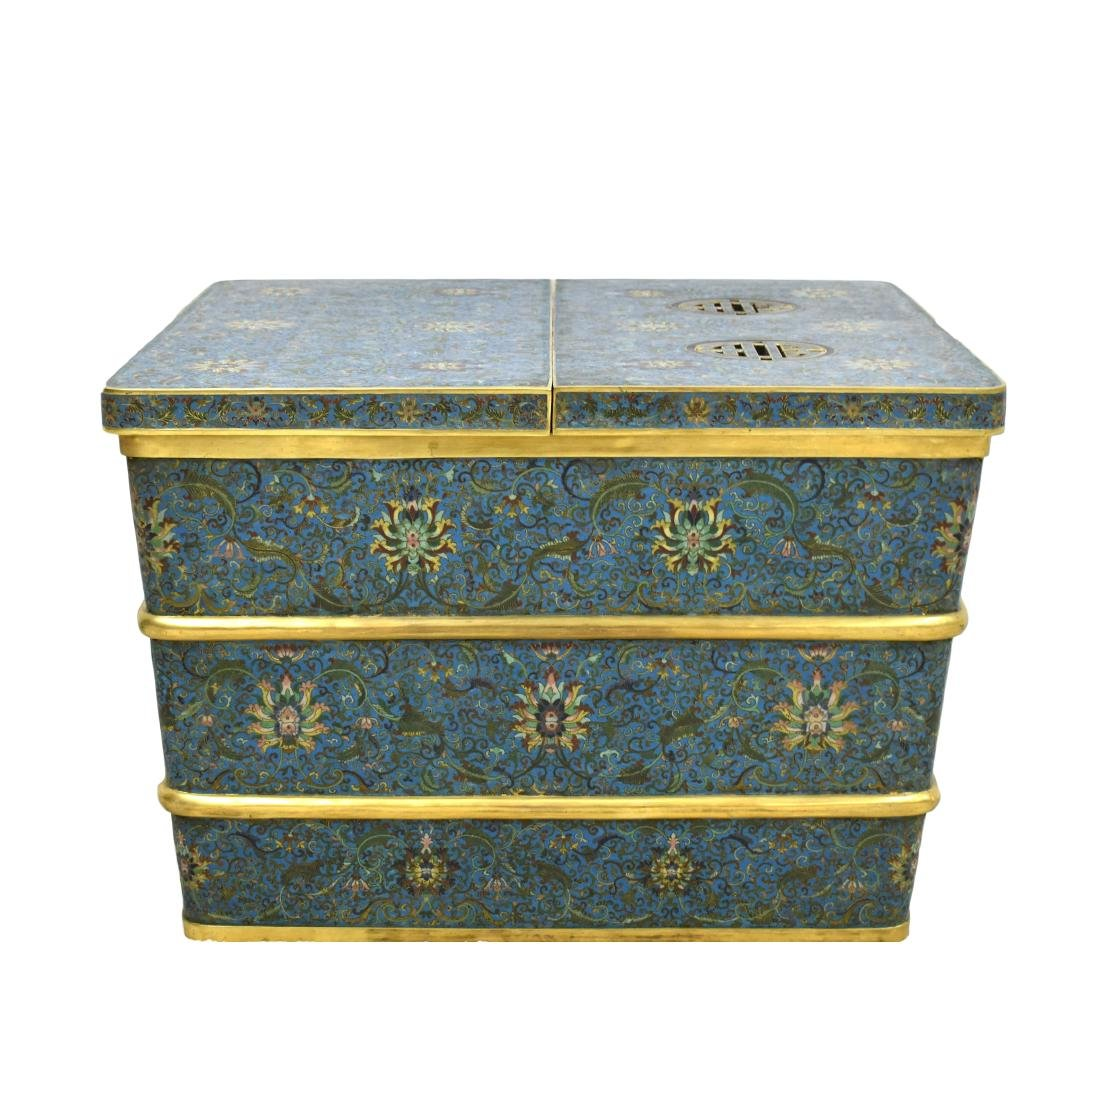 LARGE GILT BRONZE CLOISONNE ICE CHEST